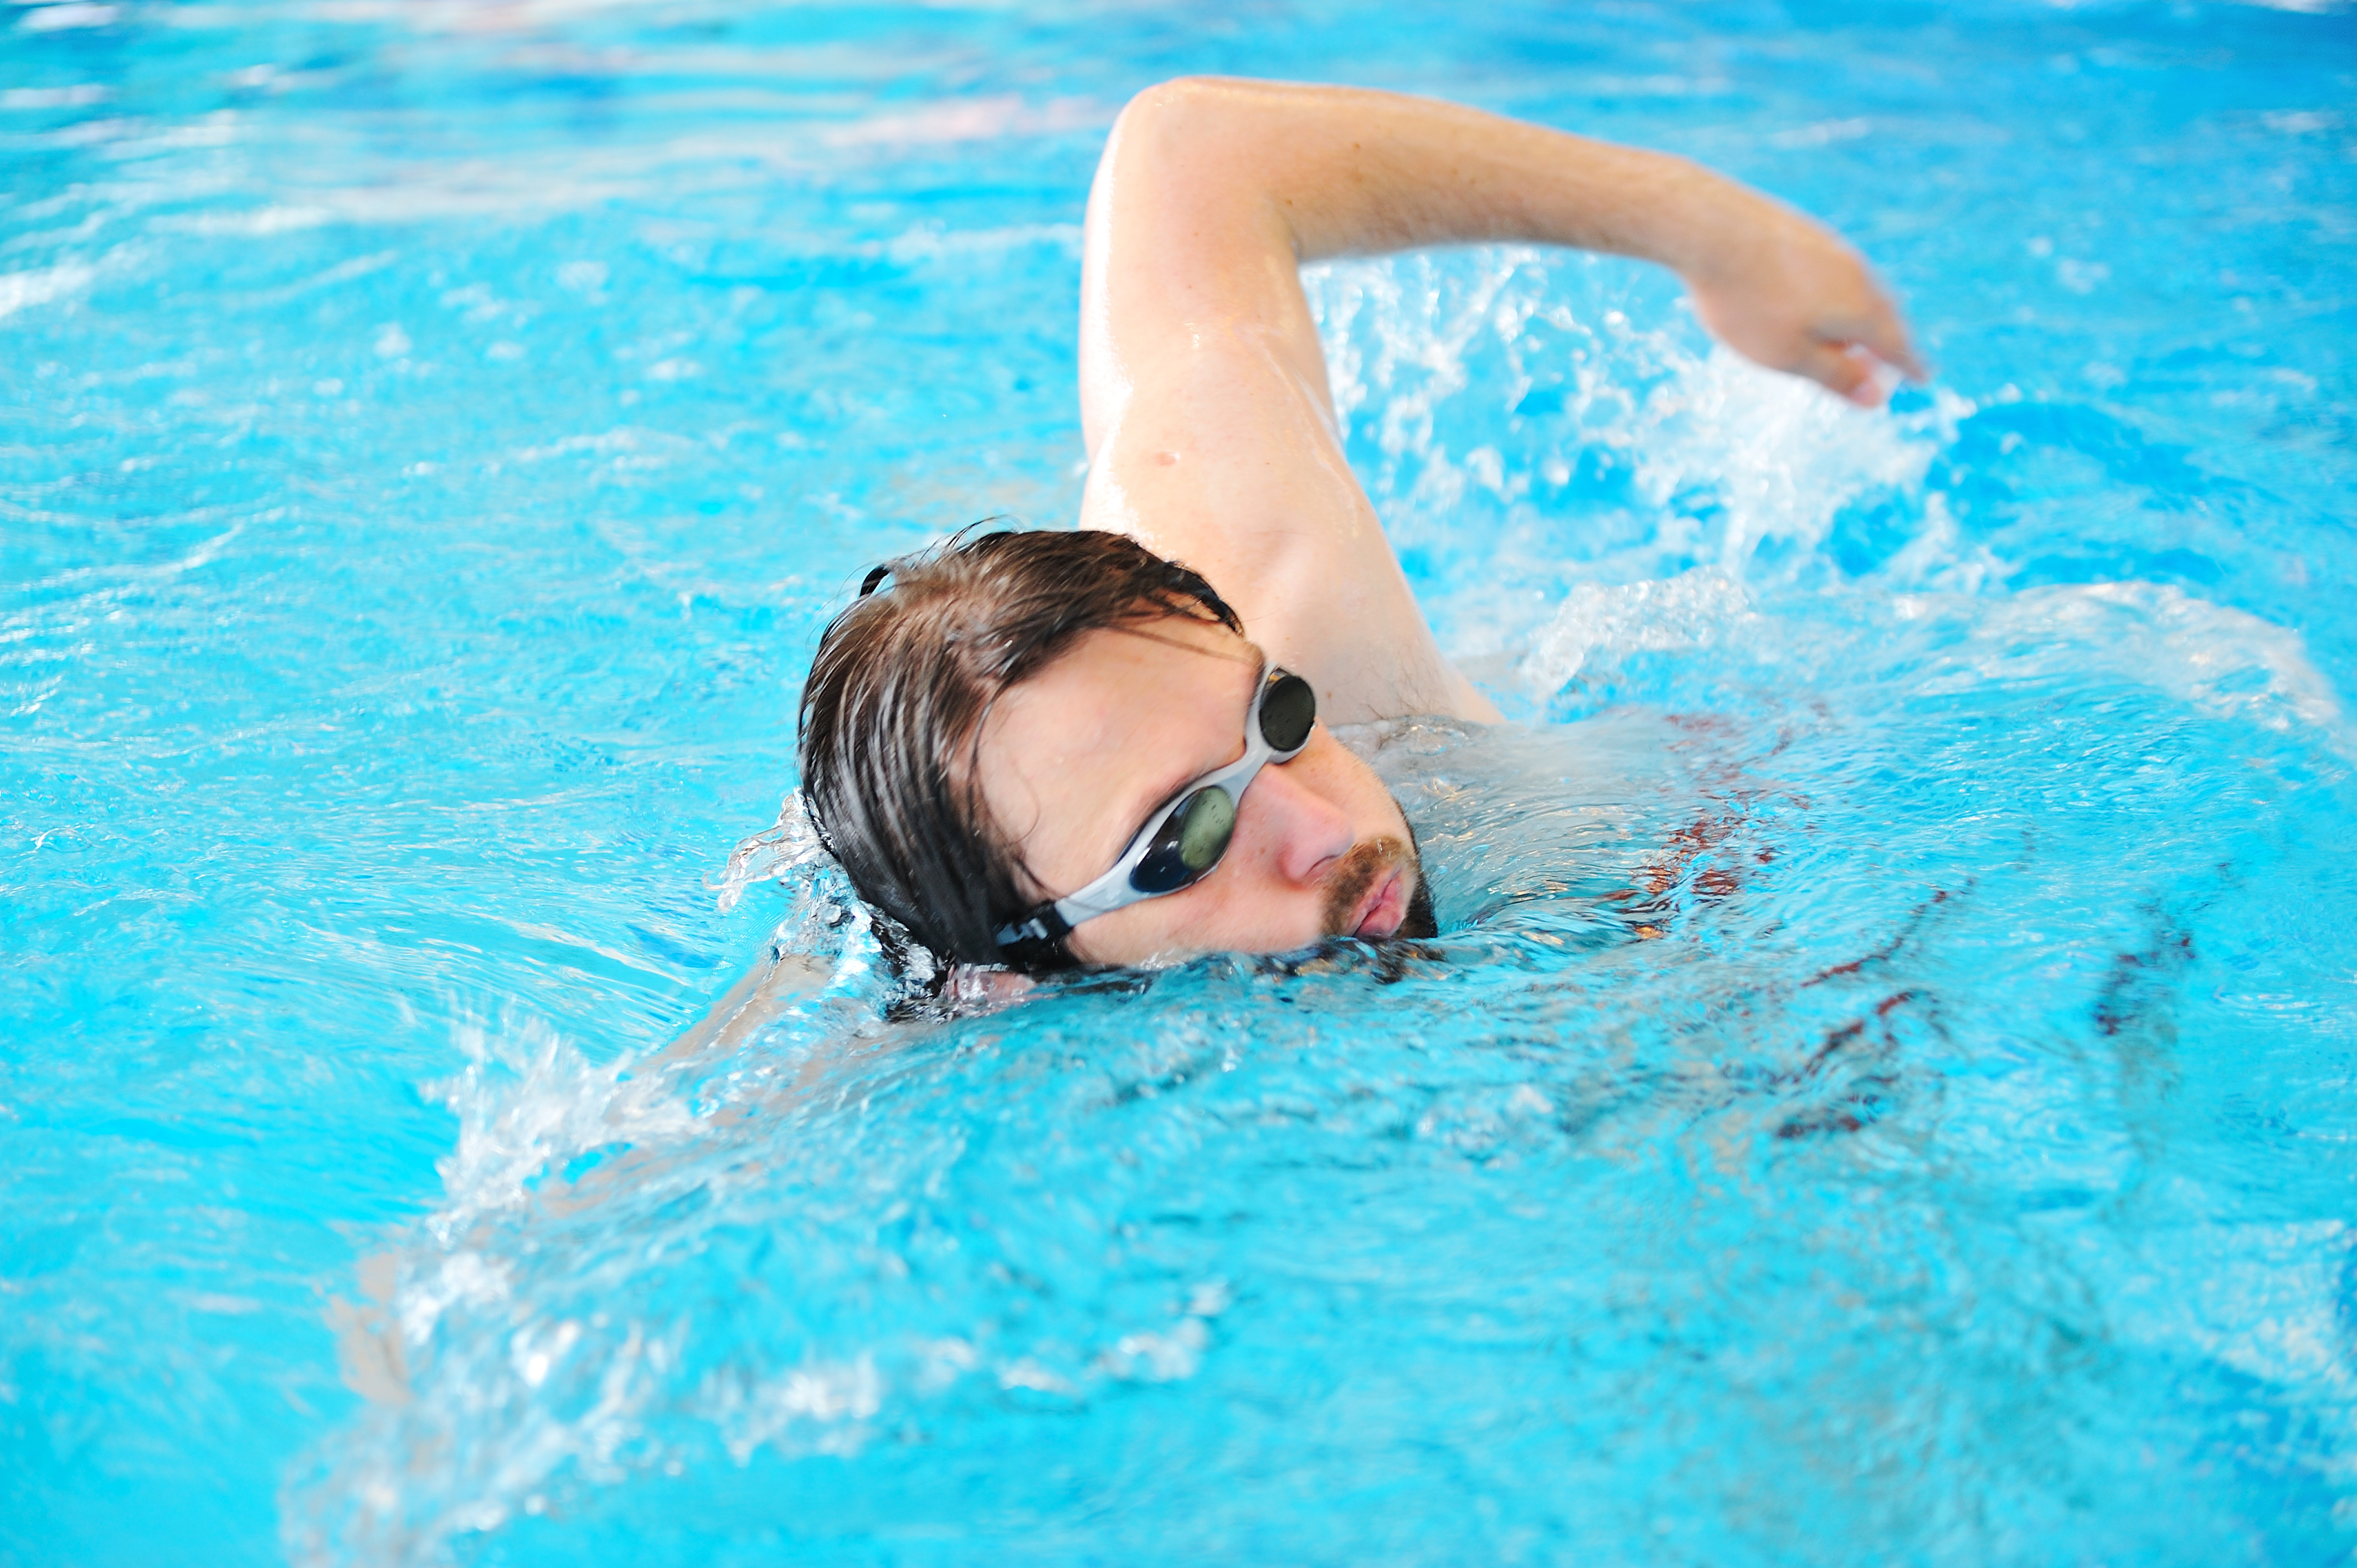 It is possible to burn around 300 calories per half hour once you can work your way up to a moderate pace. If you are a beginner, you will likely burn more calories at first because it takes a lot more effort for you to move through the water. That can be a big boon if your primary goal is weight loss. Still, more experienced swimmers can still get in a great cardio workout for the entire body. https://www.storyblocks.com/stock-image/swimmer-excercise-on-indoor-swimming-pool-sport-and-health-concept-soluowcphzj8iow8i8 Benefits of Swimming for Strength Training If you've ever watched the Olympics, you may have sat in awe gazing at the bodies of Olympic-level swimmers. While you may not aspire to stand on the podium one day, one of the significant benefits of swimming every day is how it can sculpt and shape your muscles. Your shoulders and back are often the most prominent beneficiaries along with your glutes and quads. The type of stroke you use makes a difference in which muscles get the biggest workout. Here is a rundown of which muscles gain the most based on the stroke being used. Backstroke Trapezoids Glutes Quads Middle and upper back Freestyle Chest Biceps Triceps Quads Forearms Neck Middle and upper back Breaststroke Back of shoulders Quads Calves Chest Butterfly Neck Abs Chest Shoulders Upper and lower back Lateral hamstring Quads Calves Dive In Today Aim for 30 minutes at a time when swimming, though it is okay if you can't go that long at first. Make sure to warm yourself up properly and rest as needed to avoid cramps and overextending yourself. Are you interested in having a pool installed? Ready to start swimming and reap the health benefits? Call Aqua Spas and Pools today at (877) 775-3442 or via our contact form.